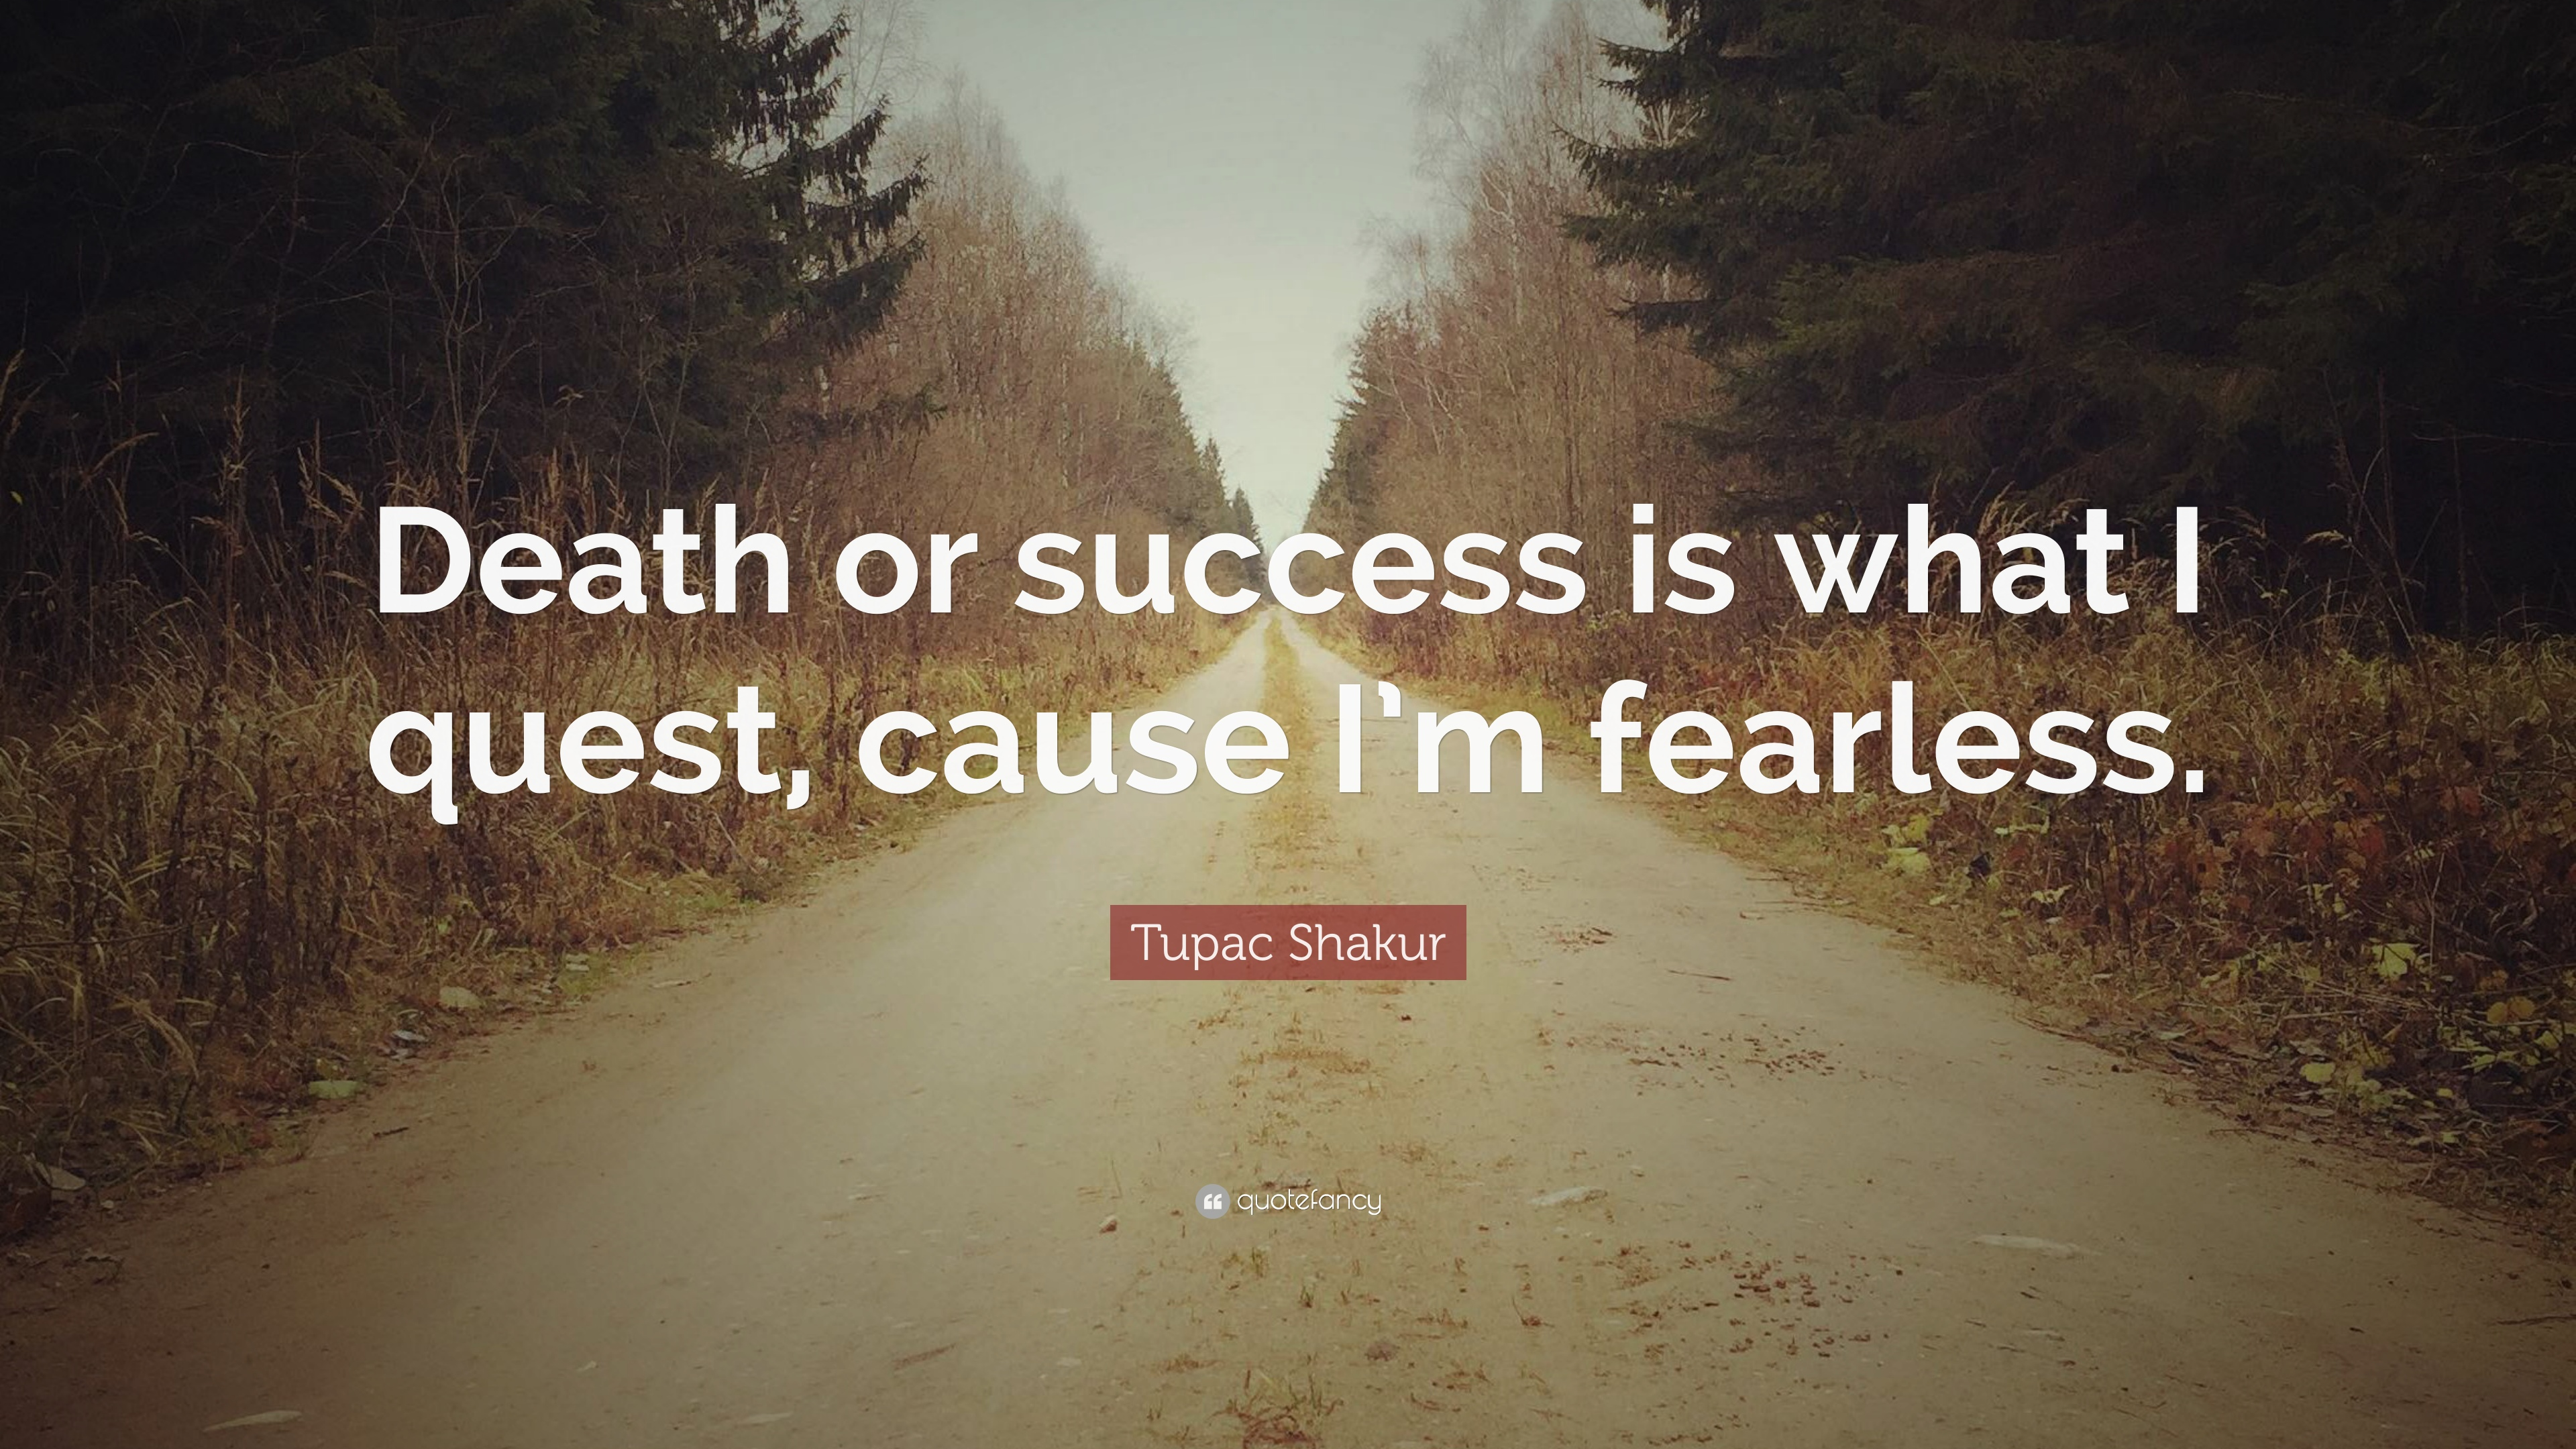 Tupac Shakur Quote Death Or Success Is What I Quest Cause Im